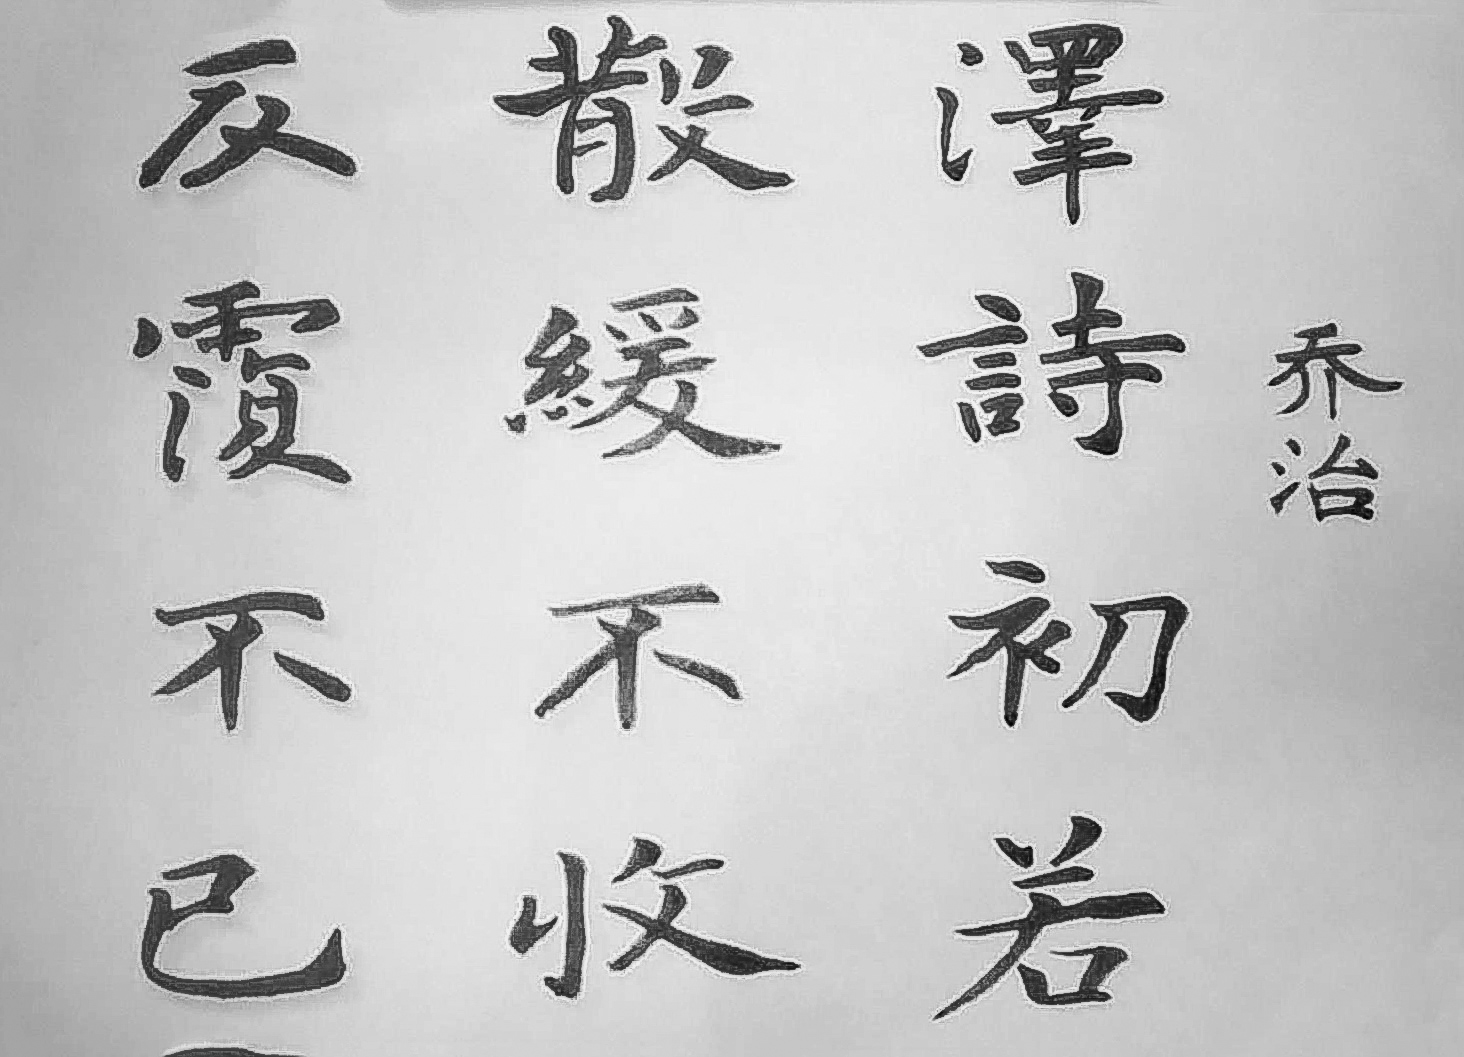 16 Year Old Chinese Calligraphy Artist Giorgi Gerogia